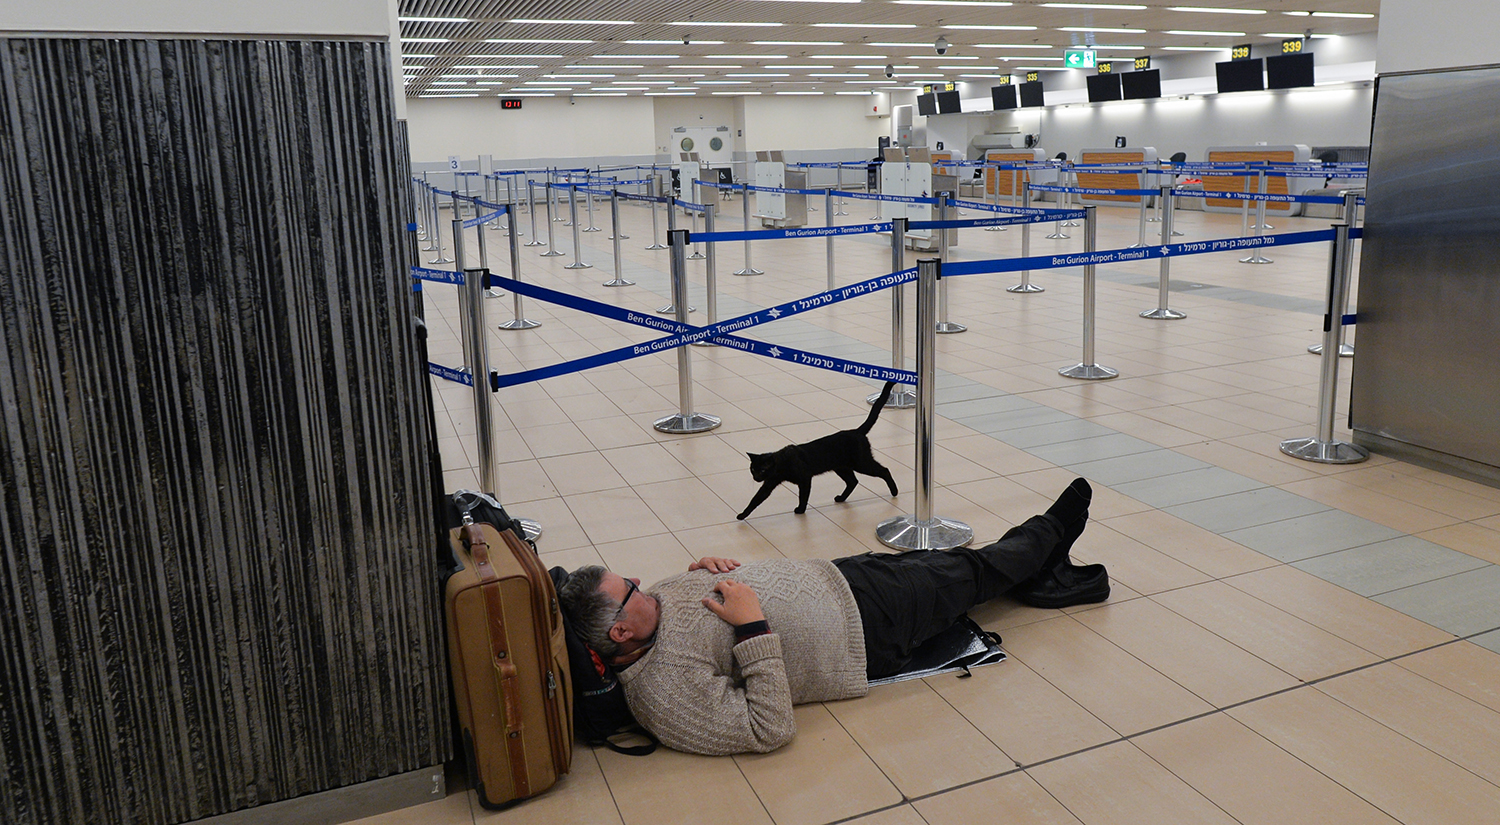 A traveler waits in the near-empty departure hall of Terminal 1 at the Ben Gurion Airport in Tel Aviv-Yafo, Israel, on March 10.